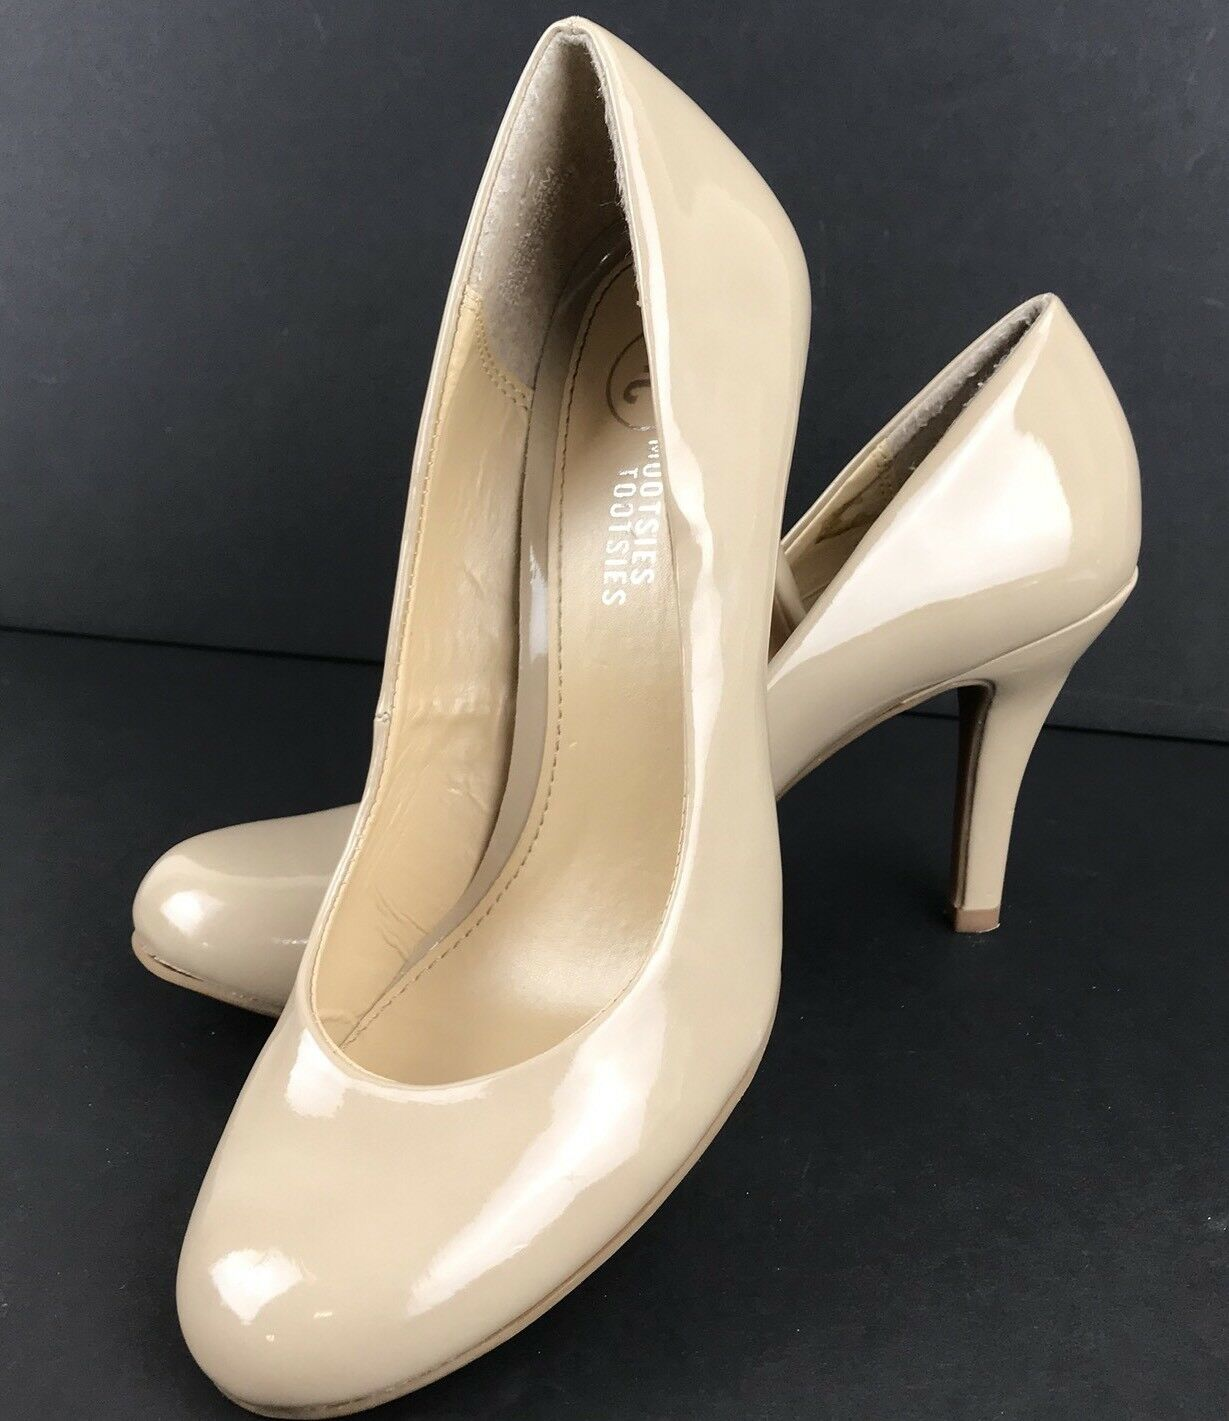 Mootsies Tootsies Moideal Tan Beige Patent Classic Pumps shoes Size 8 High Heels